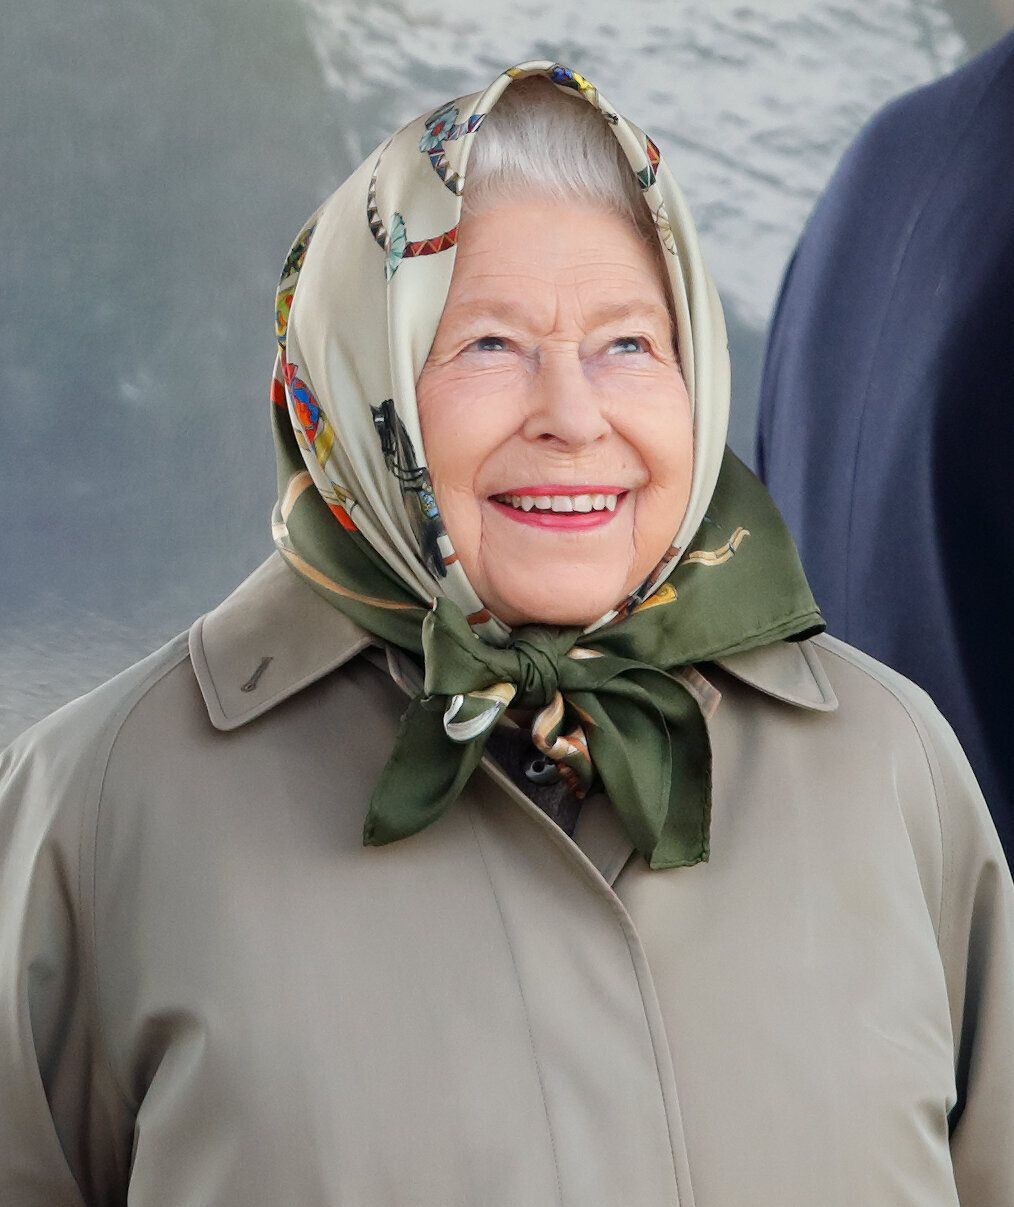 WINDSOR, UNITED KINGDOM - MAY 11: (EMBARGOED FOR PUBLICATION IN UK NEWSPAPERS UNTIL 24 HOURS AFTER CREATE DATE AND TIME) Queen Elizabeth II watches her horse 'Balmoral Mandarin' compete in the BSPS Ridden Mountain and Moorland class on day 4 of the Royal Windsor Horse Show in Home Park on May 11, 2019 in Windsor, England. (Photo by Max Mumby/Indigo/Getty Images)